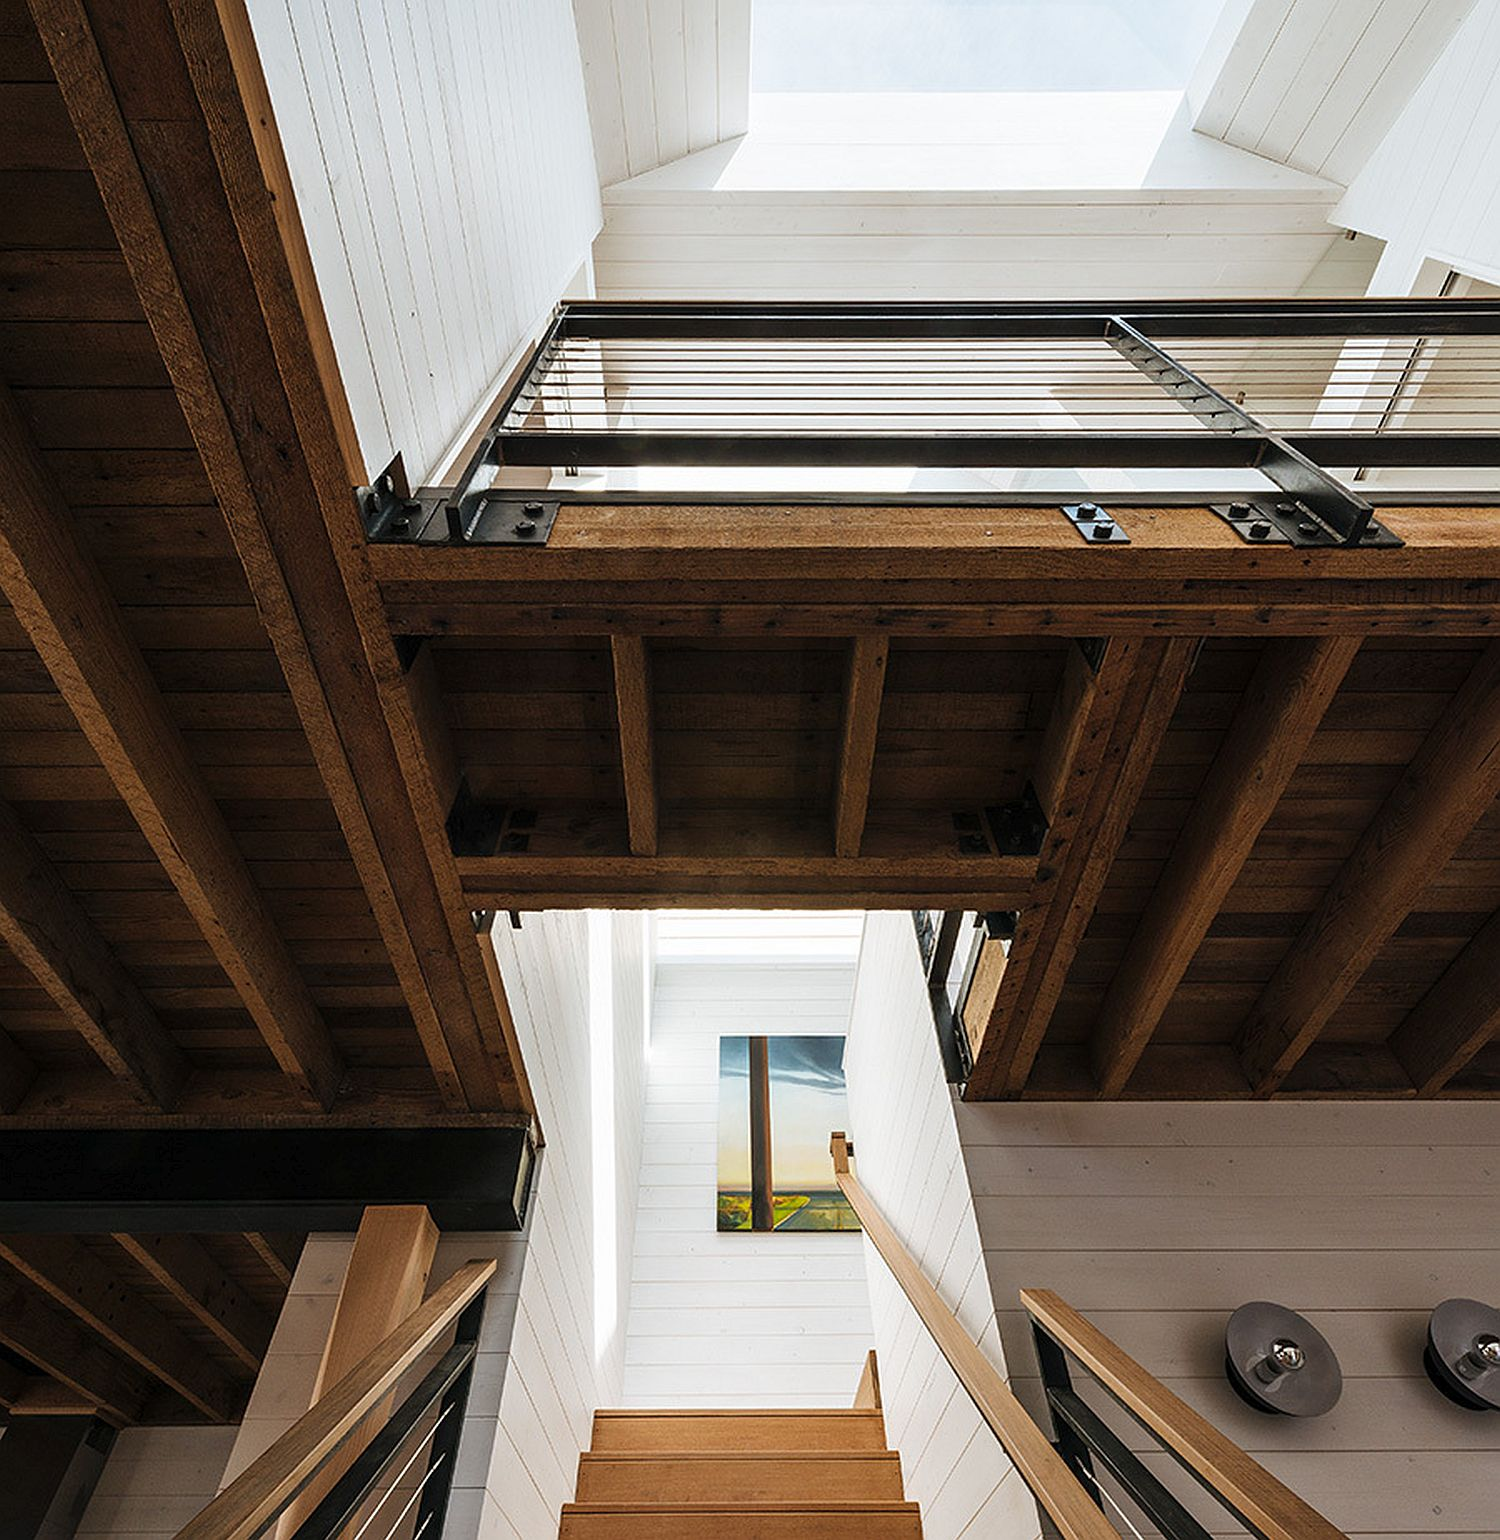 Wooden upper level of the house with bedrooms